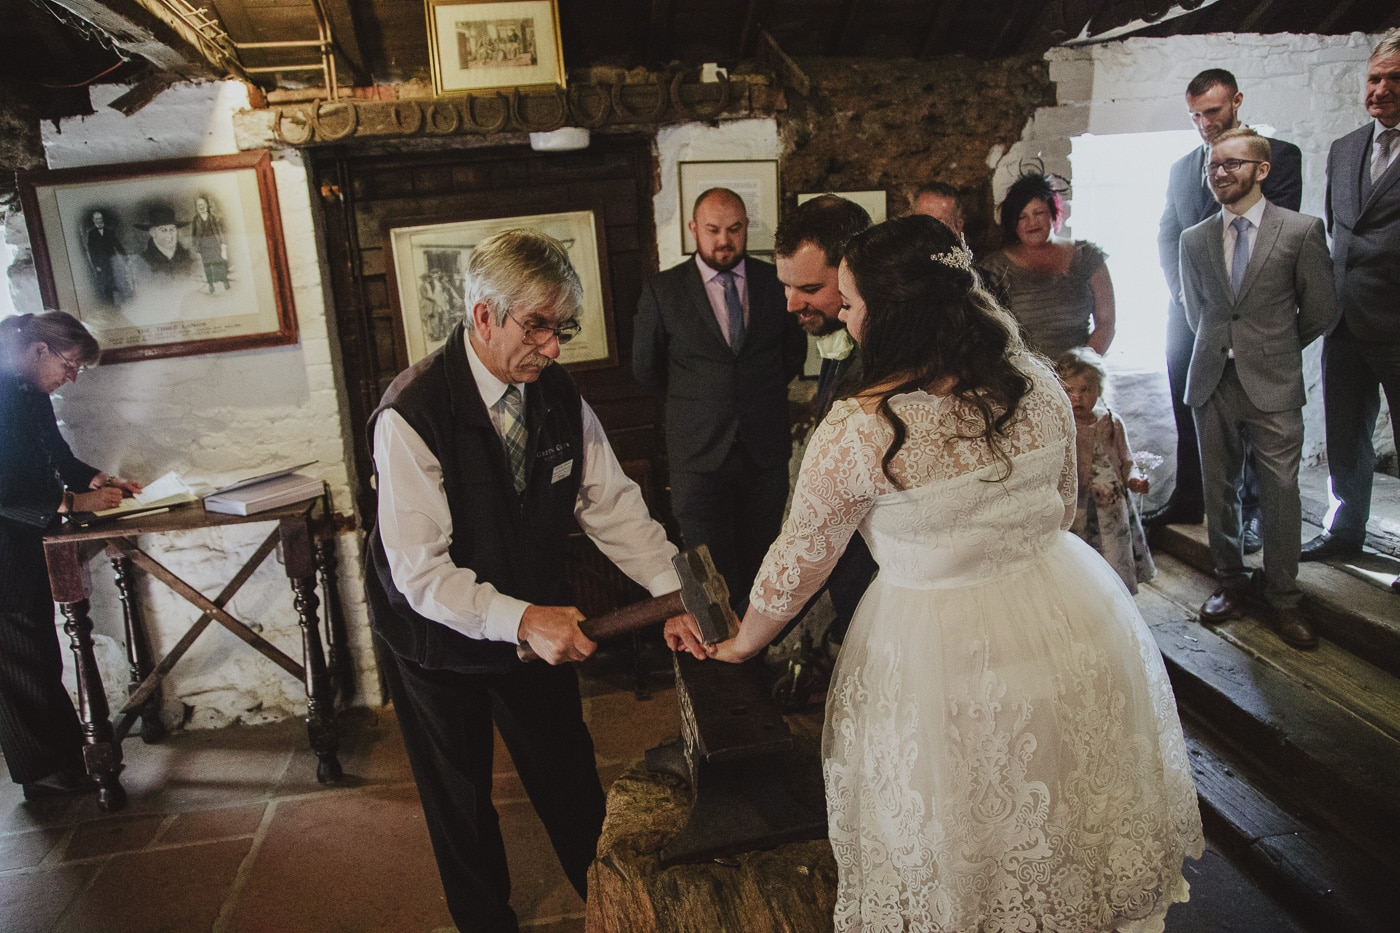 Bride and groom being blessed in Gretna Green